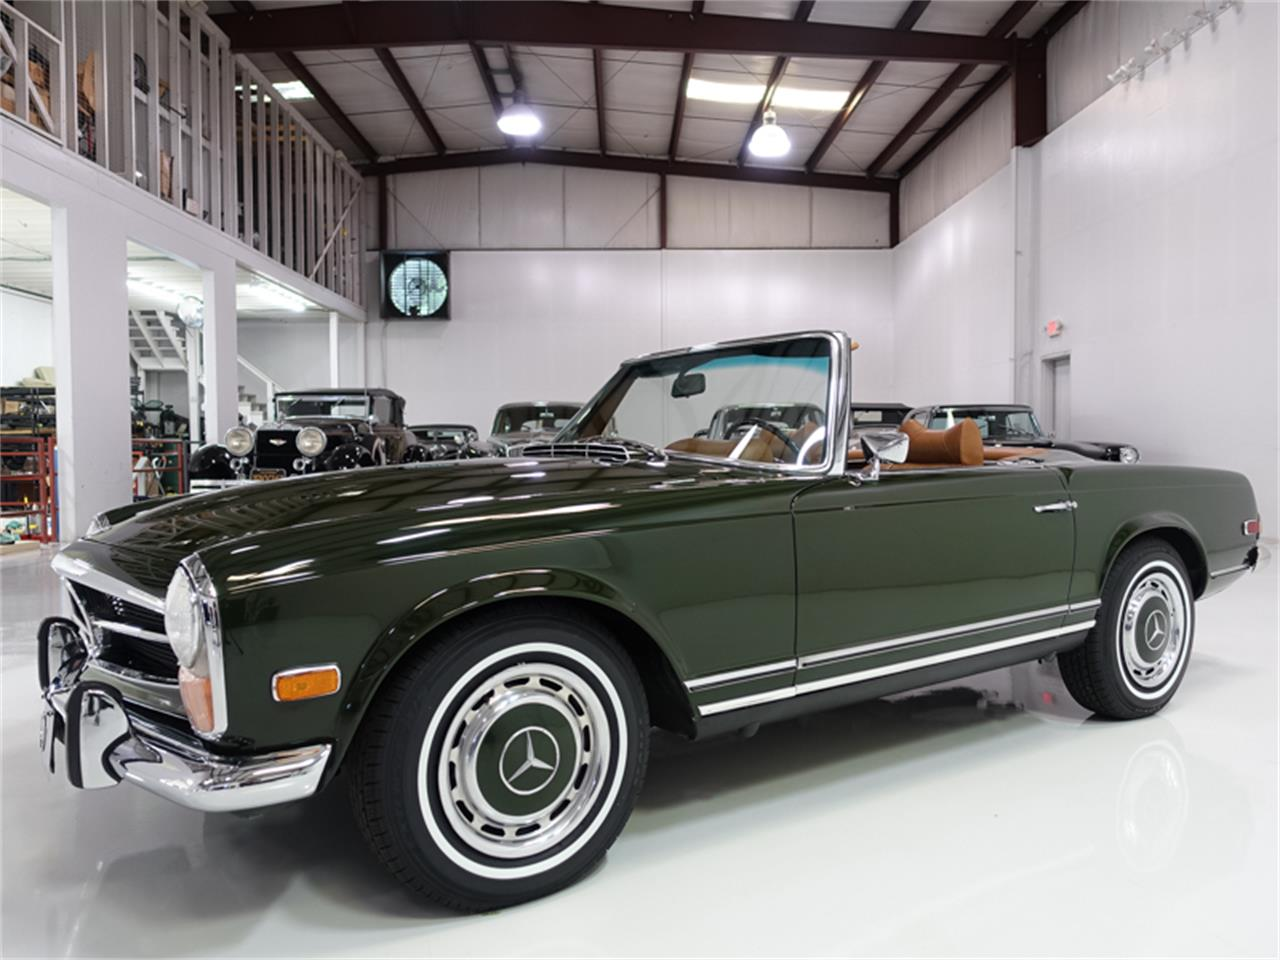 Large Picture of Classic '71 Mercedes-Benz 280SL located in Missouri Offered by Daniel Schmitt & Co. - PGT6